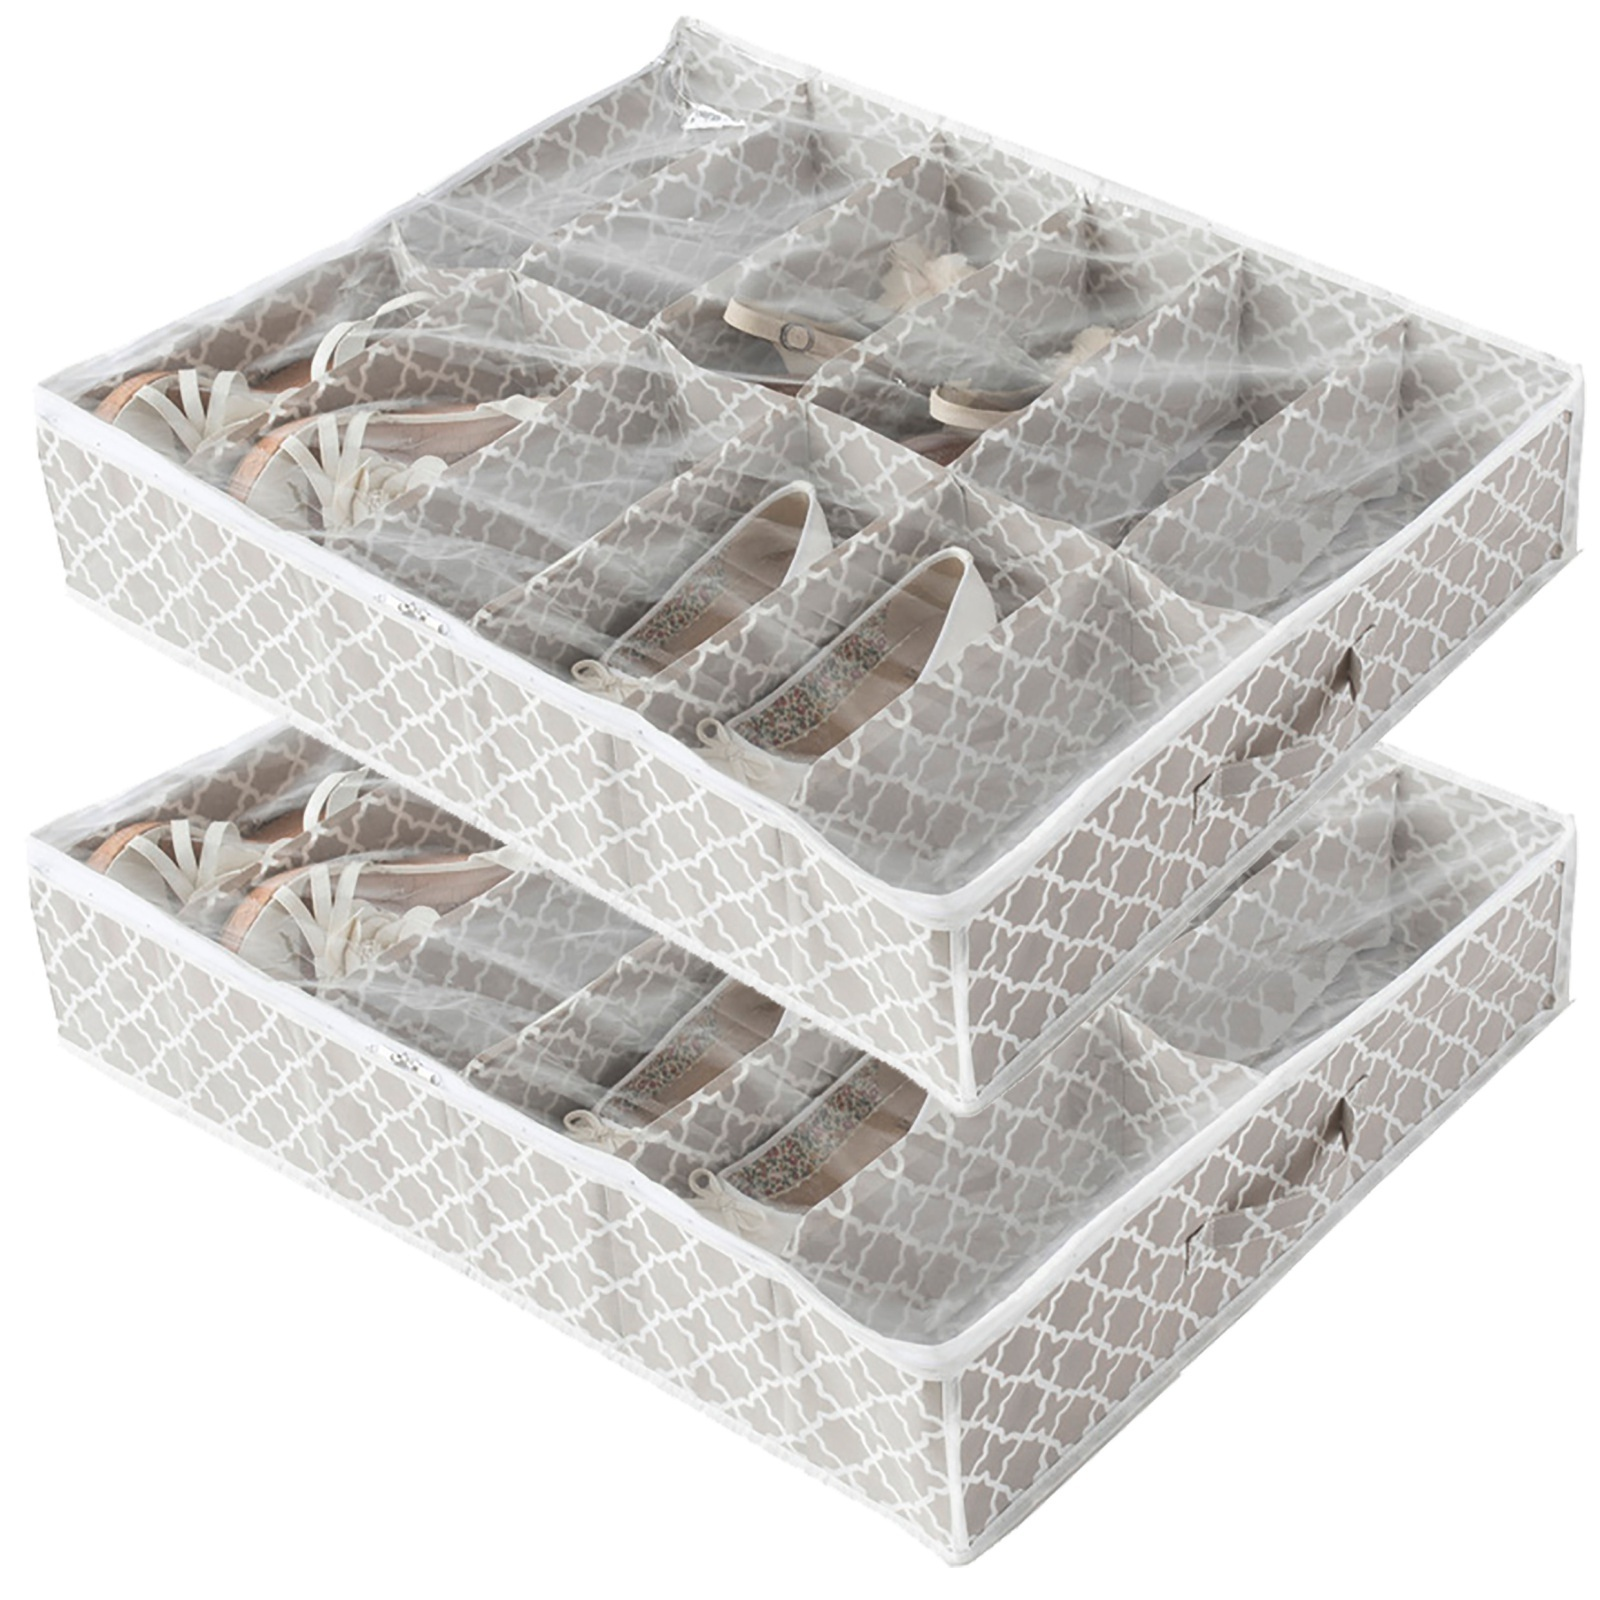 Ebay Uk: 2 Shoe Storage Boxes Container Under Bed Store Fabric Bags